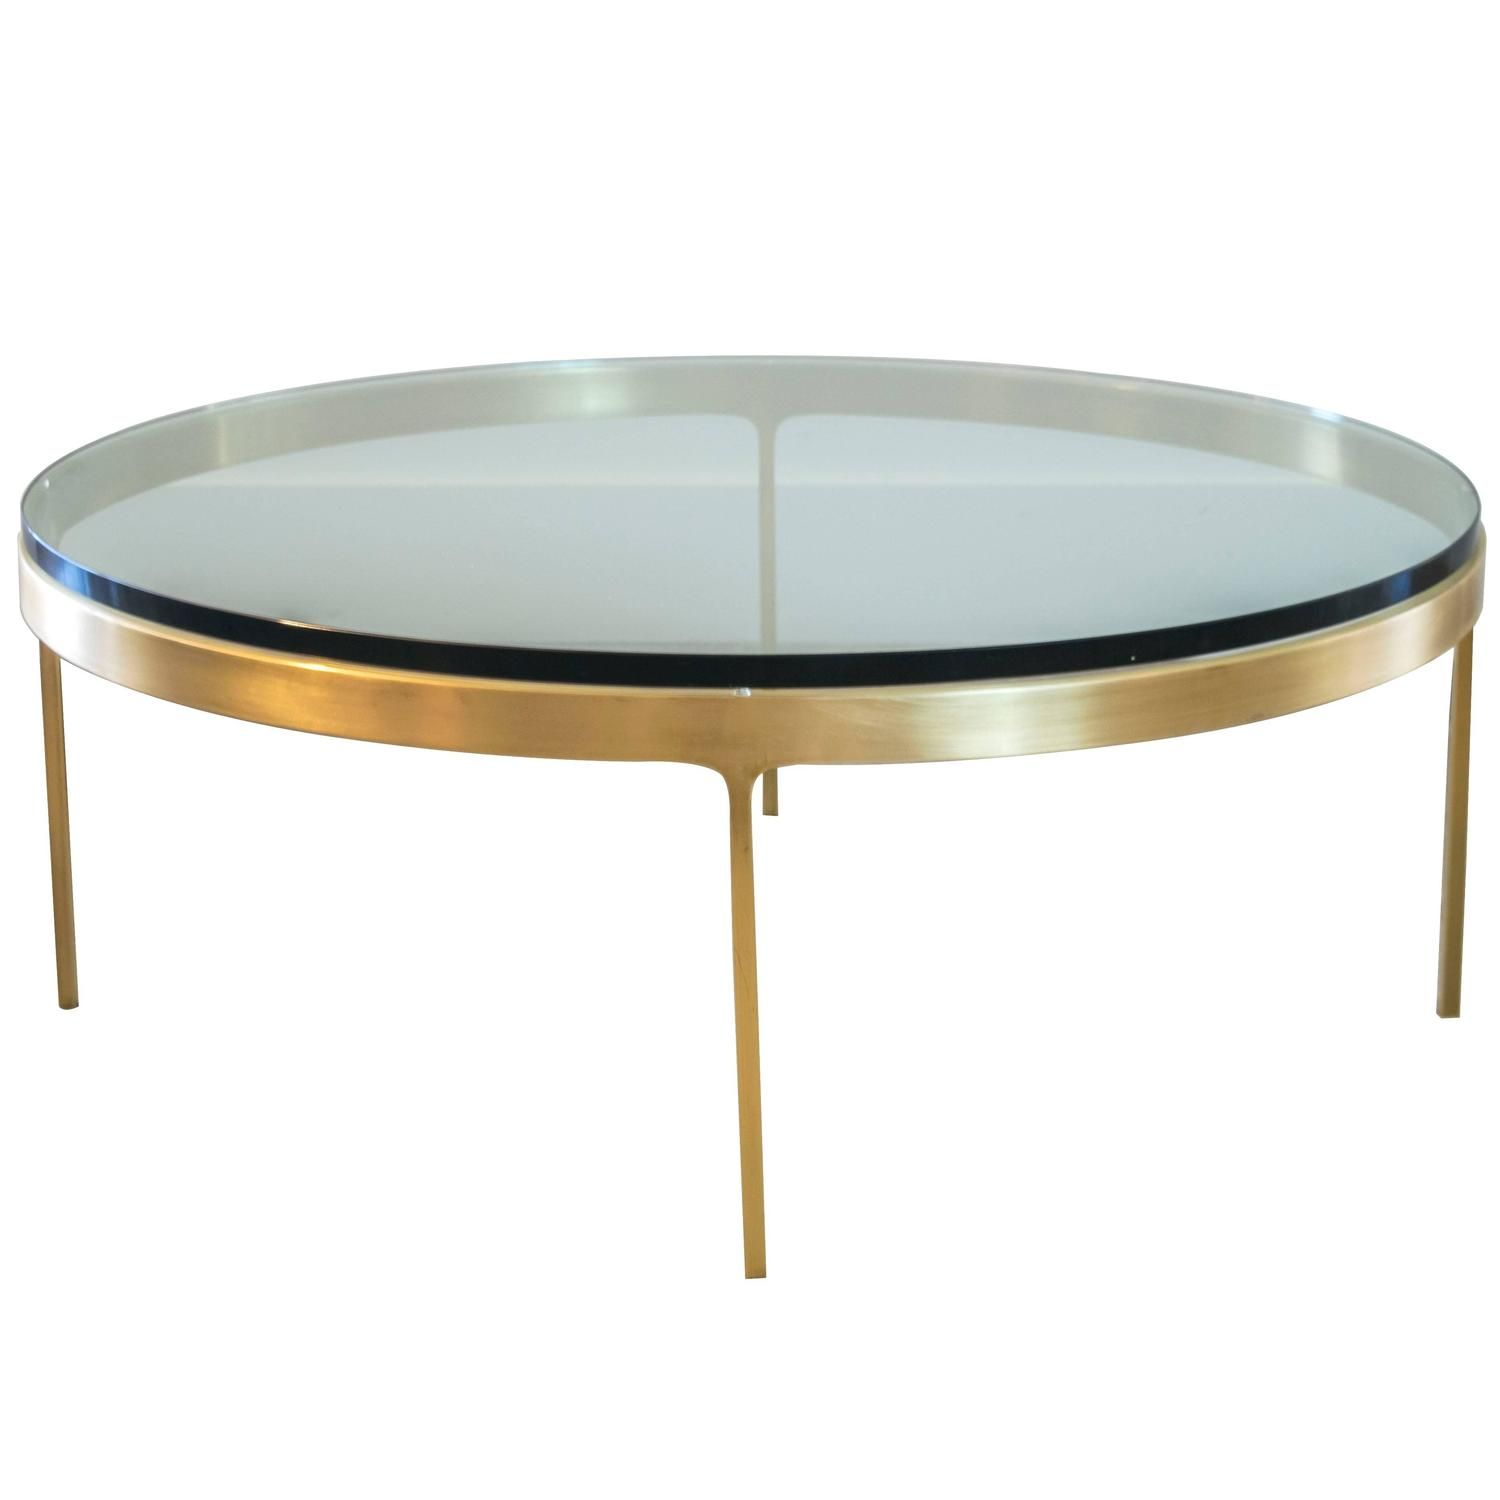 Attractive Solid Brass Round Coffee Table By Nicos Zographos